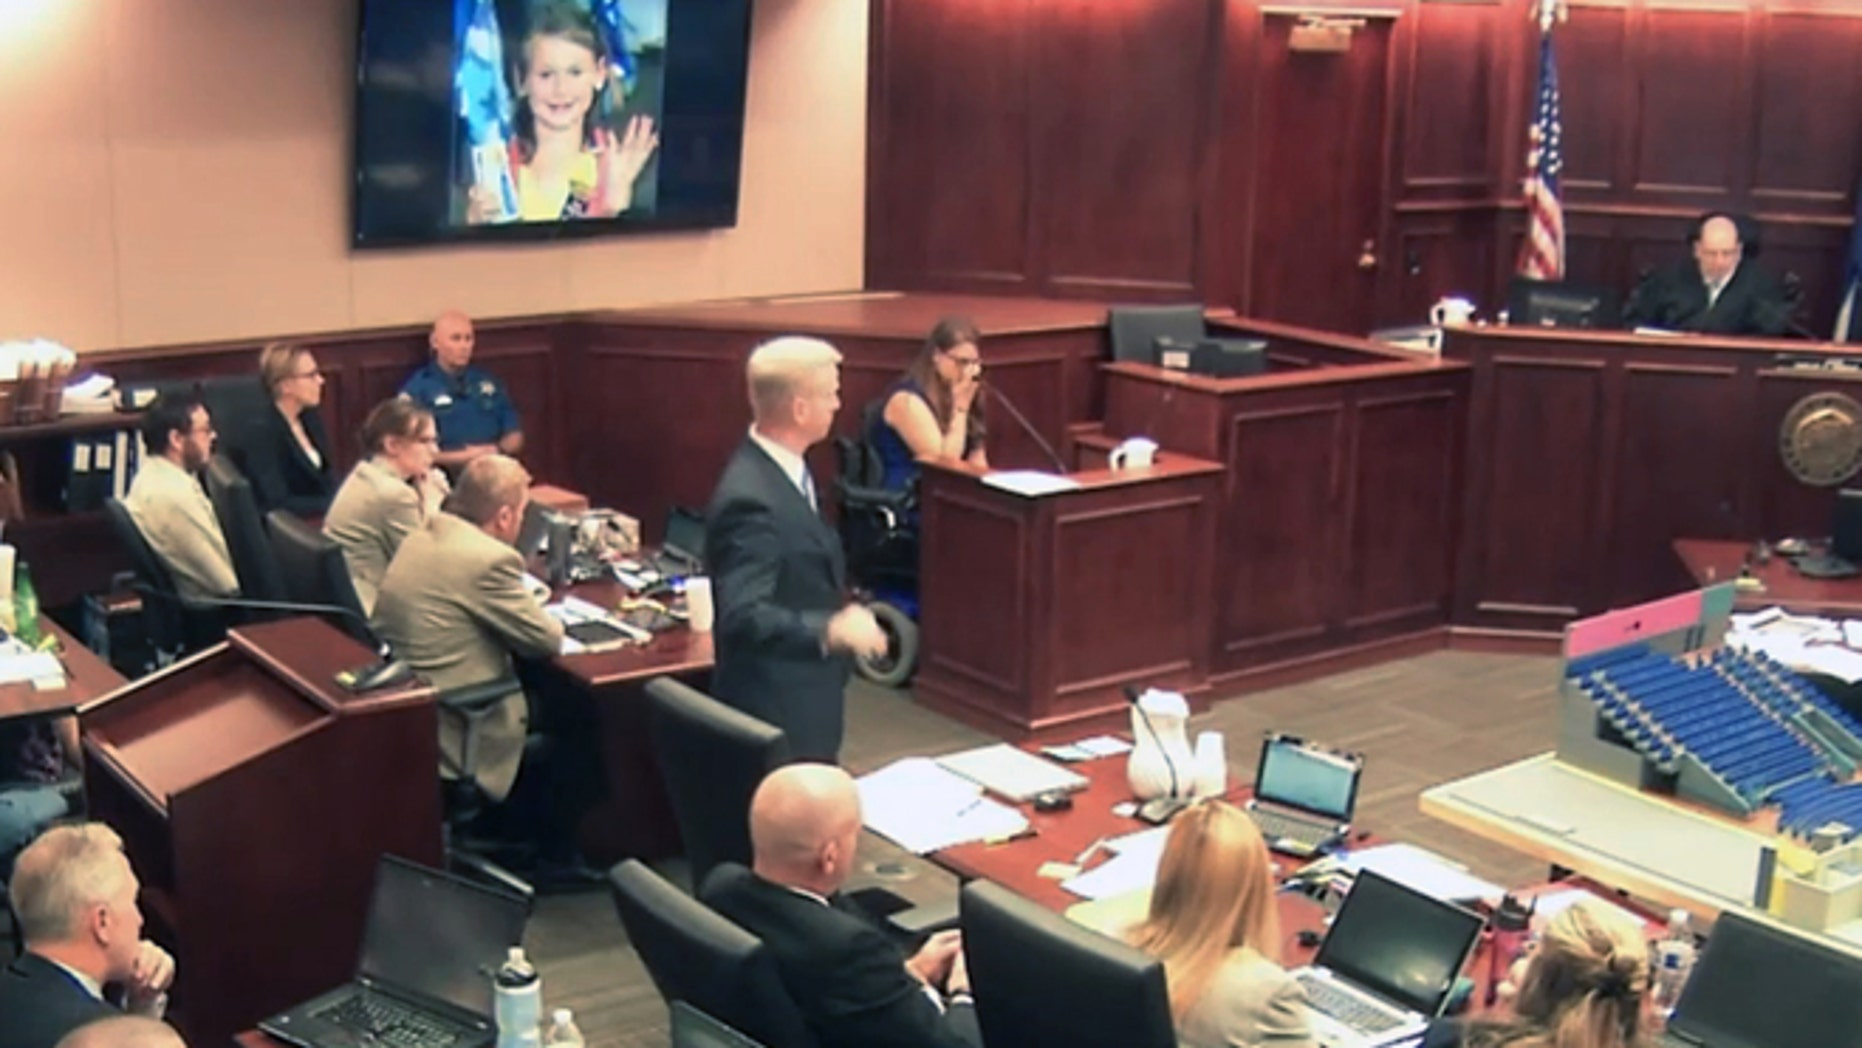 June 19, 2015: In this image taken from video, Ashley Moser, center top, who lost her 6-year-old daughter Veronica in the 2012 Colorado movie theater mass shooting, cries while testifying as a picture of her slain daughter is shown, top, during the trial of theater shooter James Holmes, pictured at top left, in Centennial, Colo. (AP)